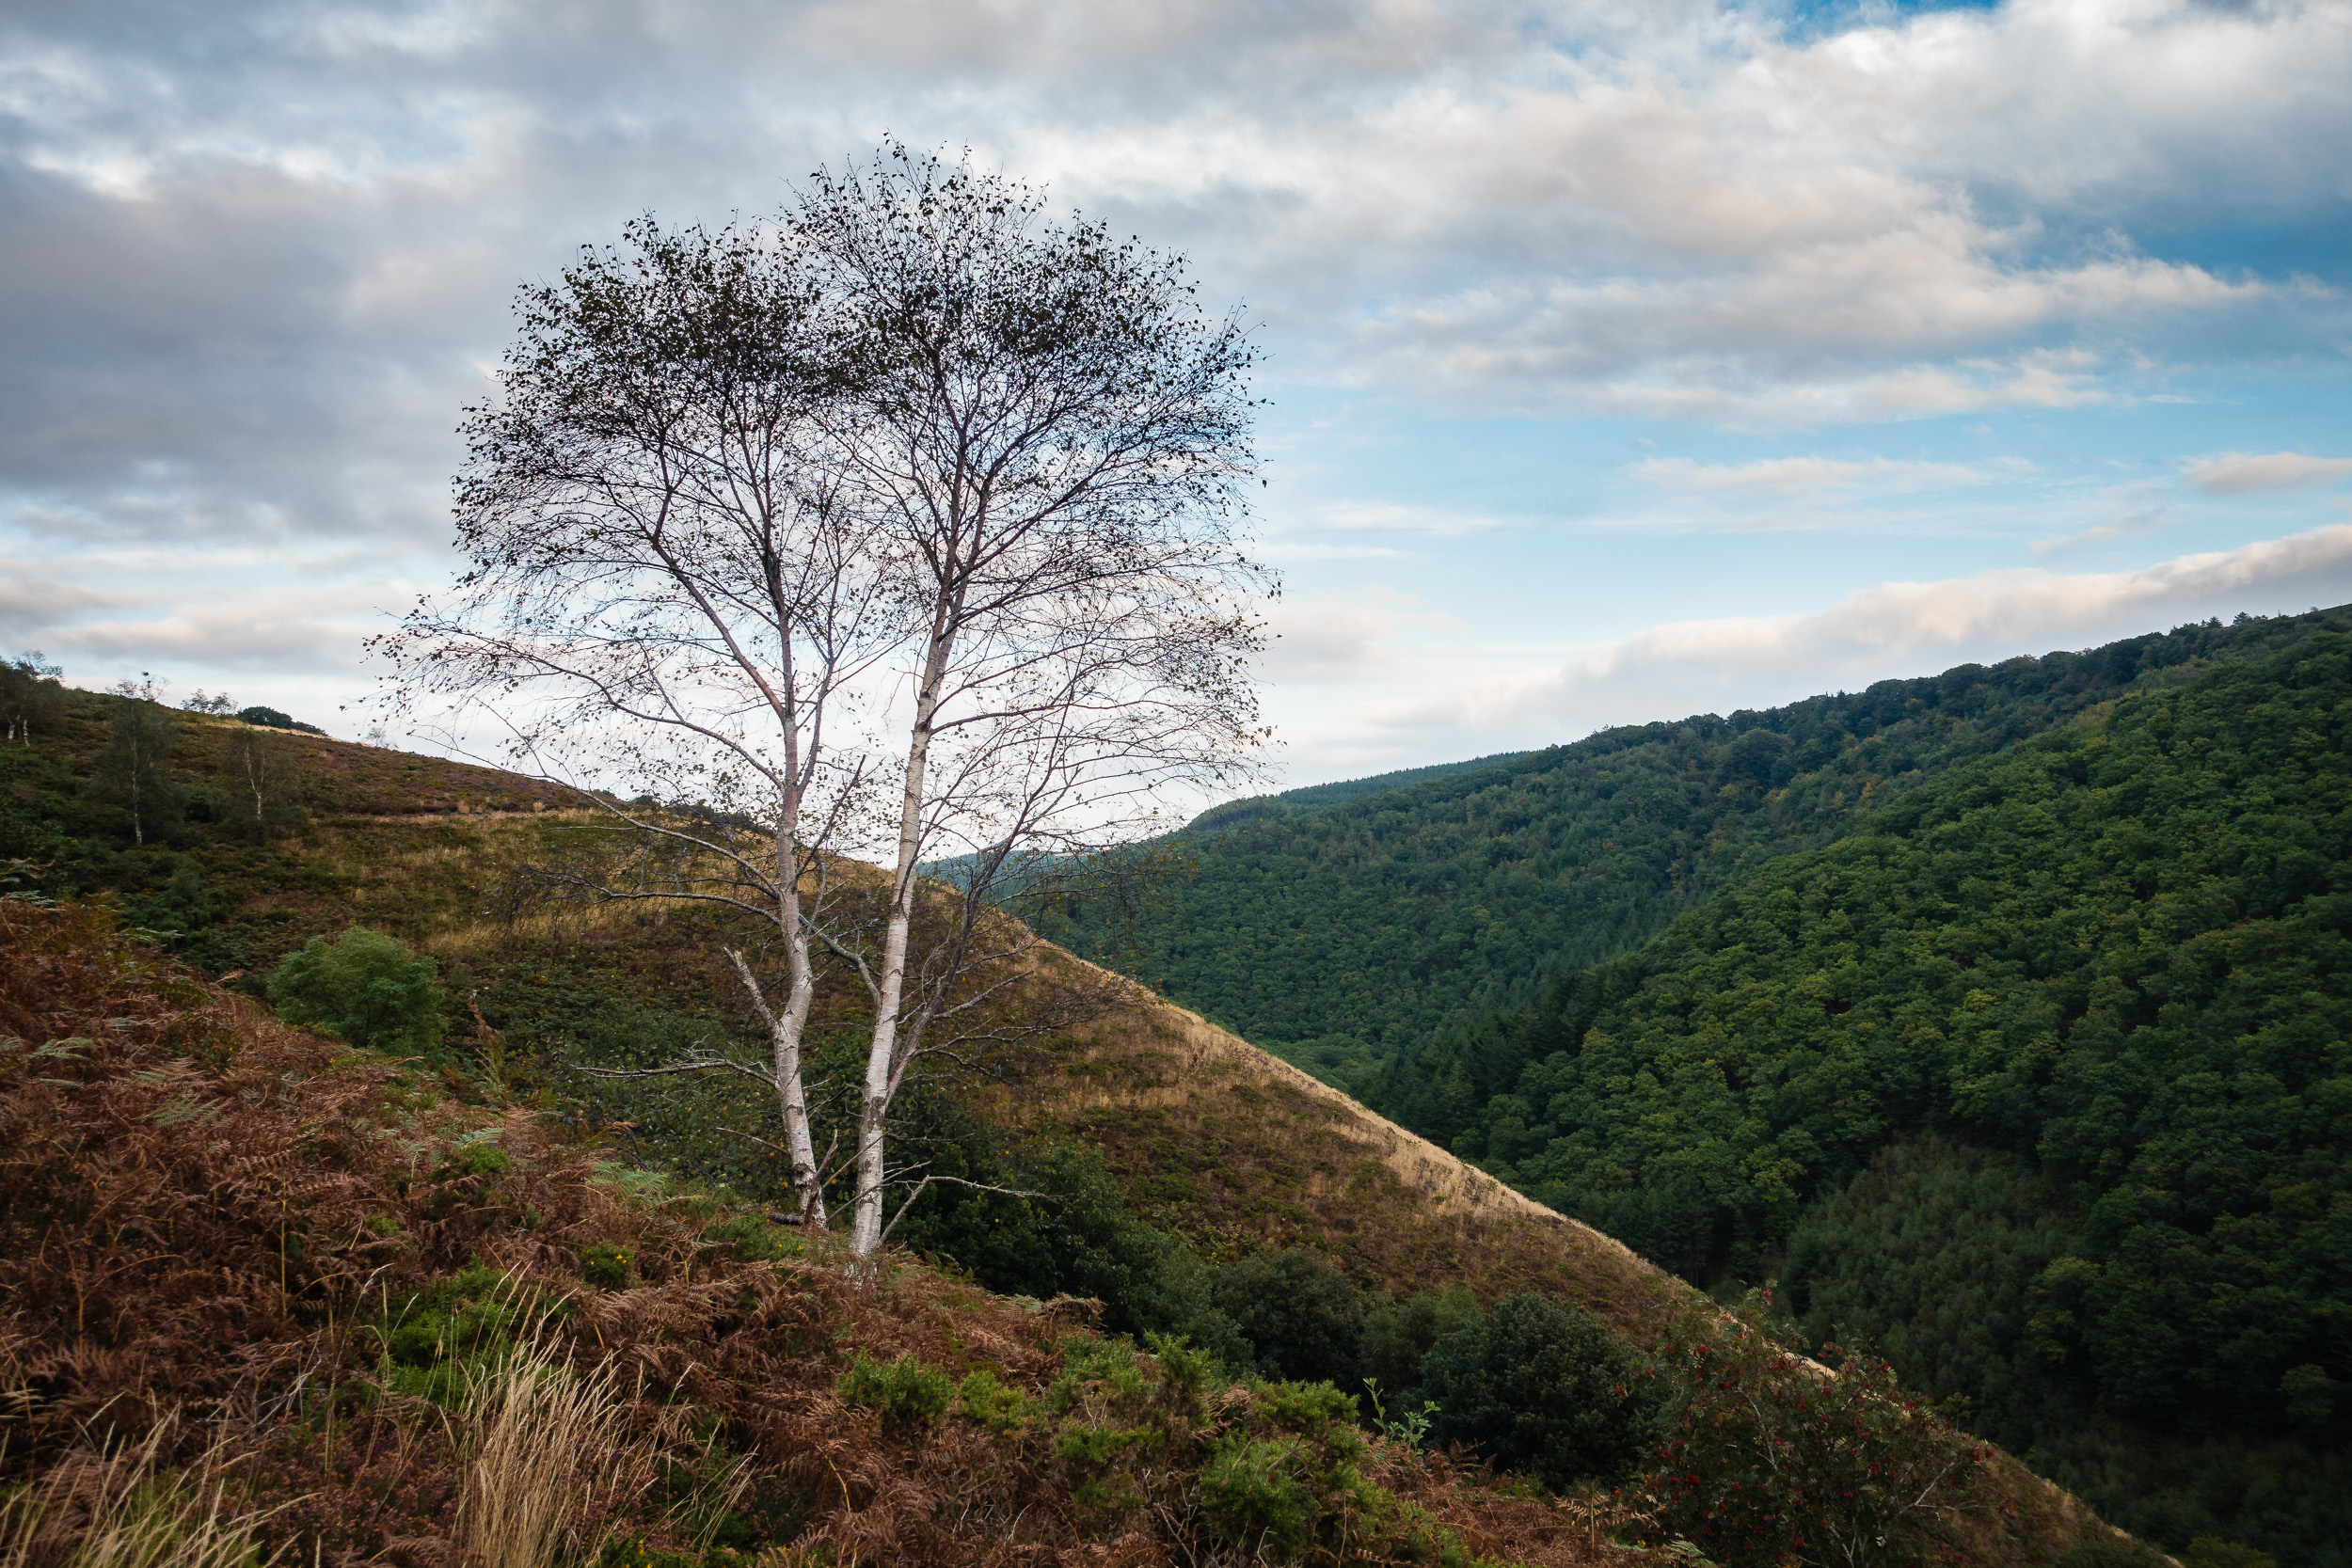 Teign Valley with Tall Tree